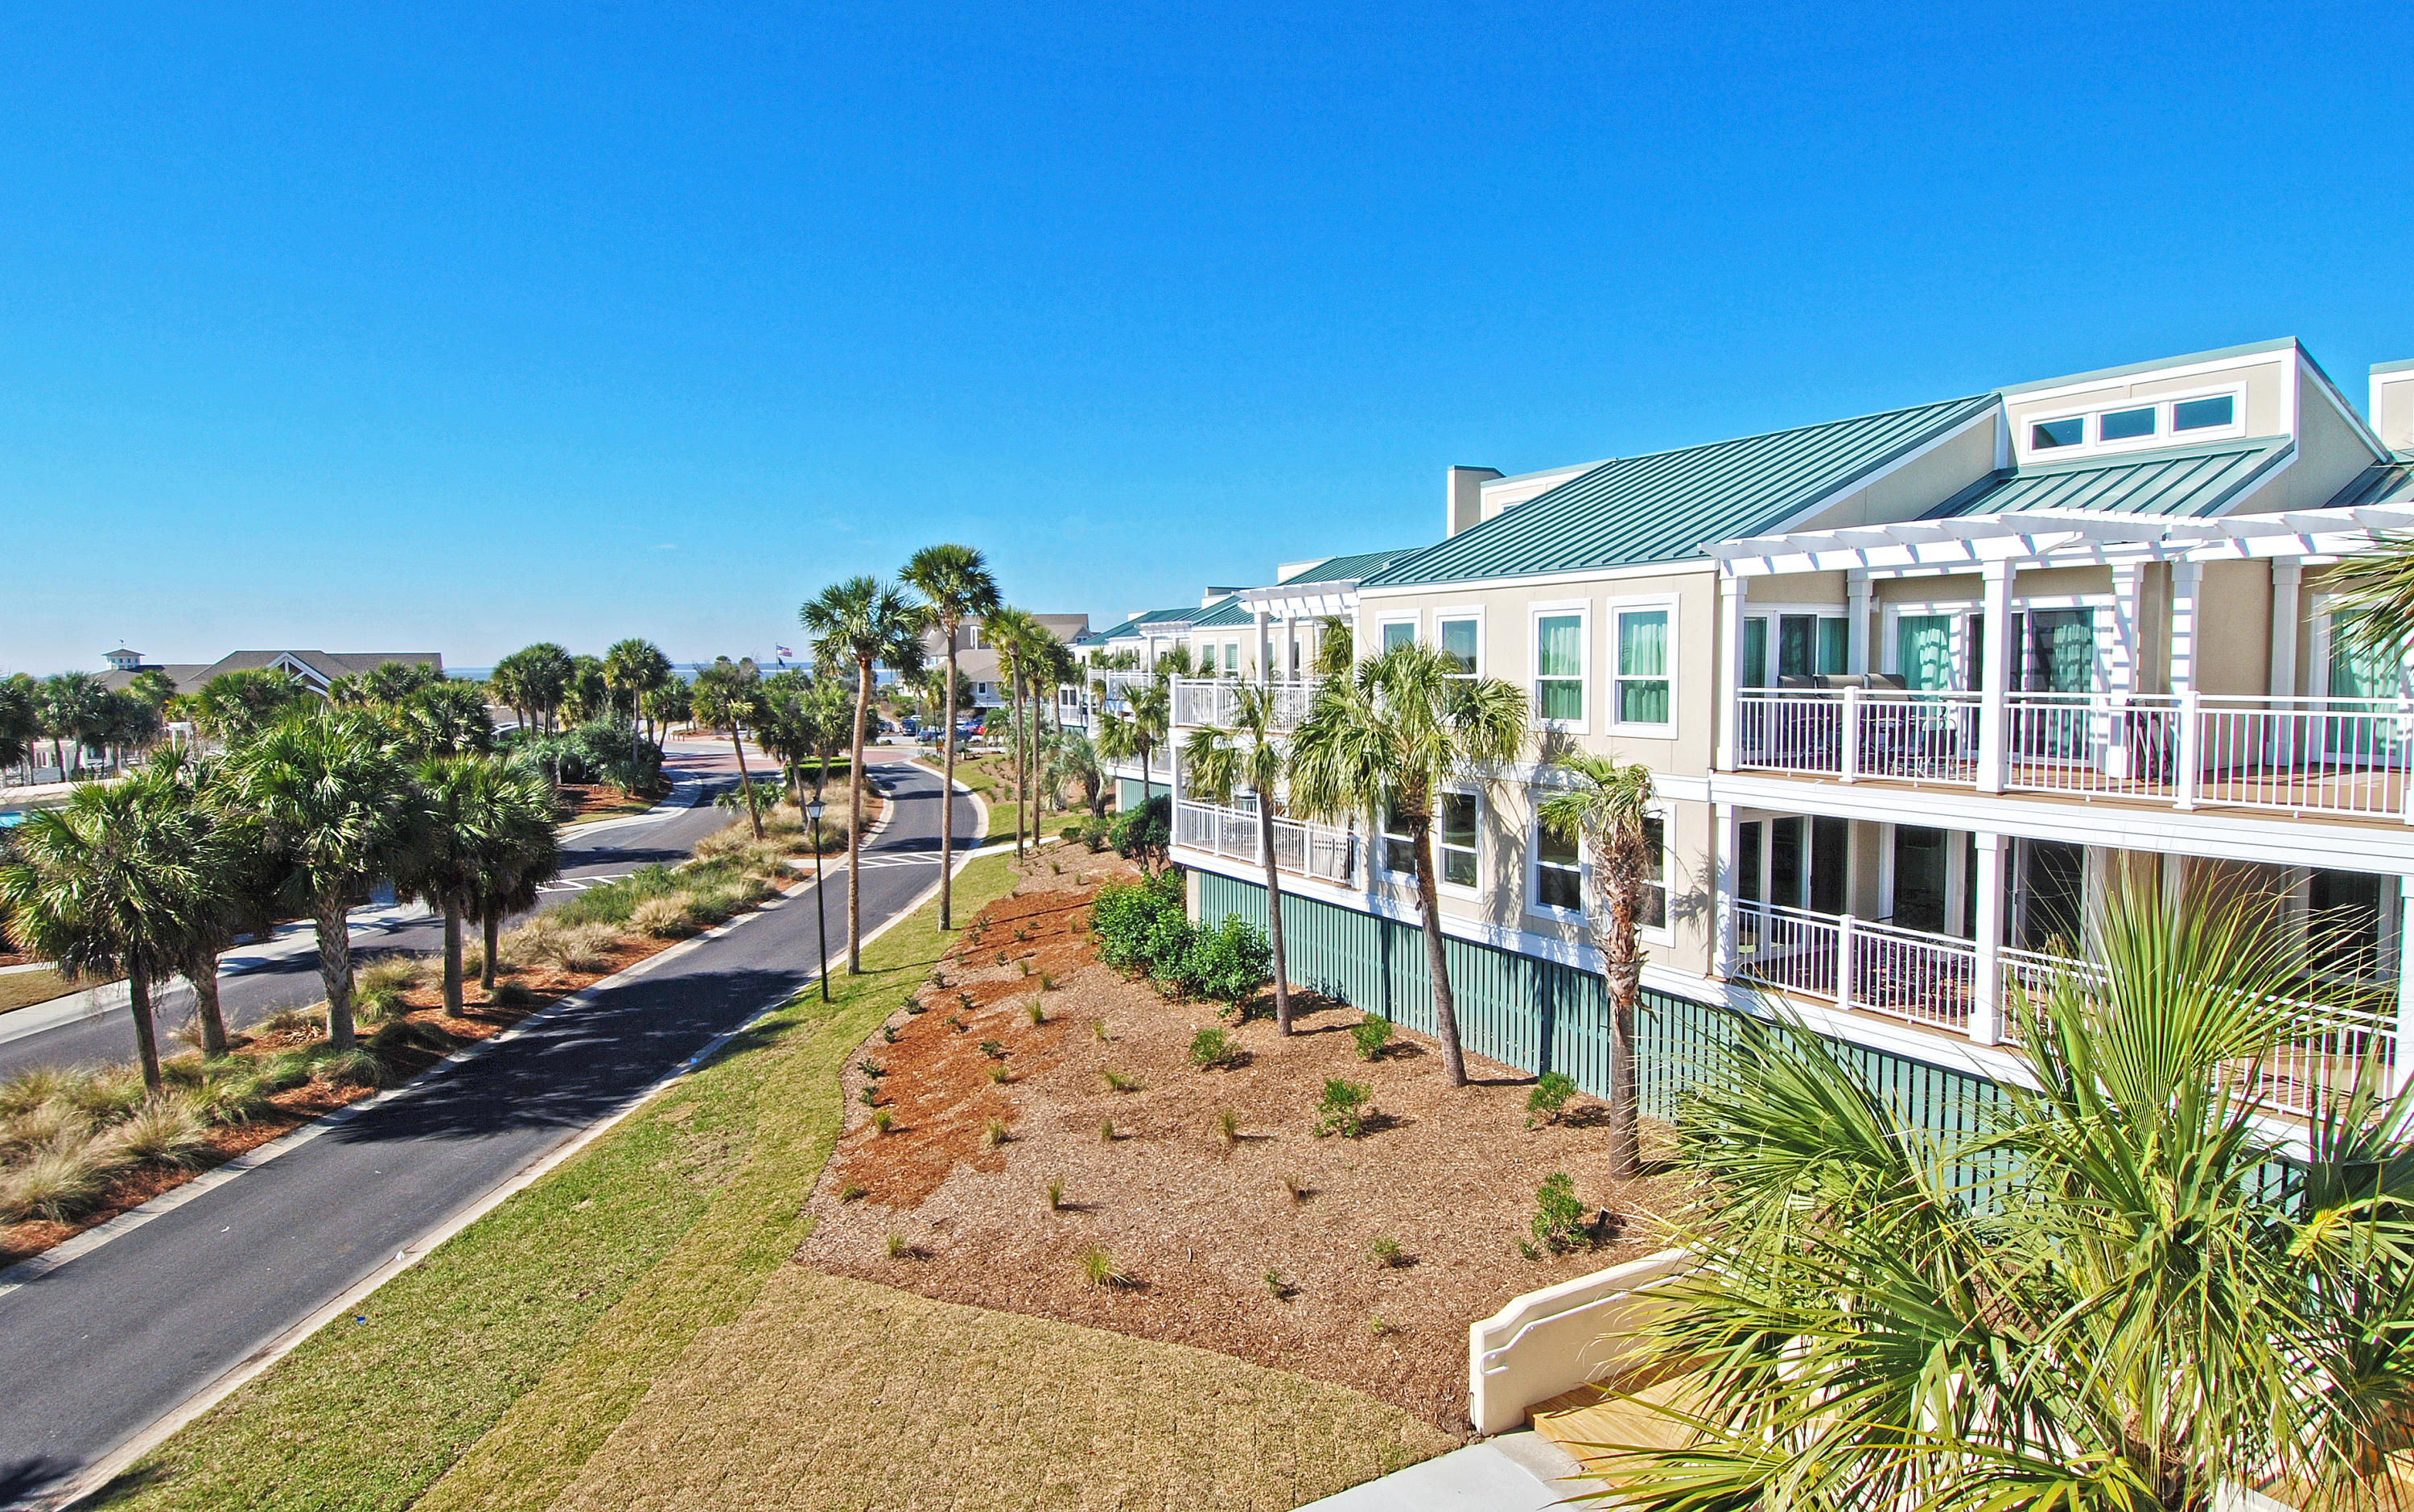 Atrium Villas Homes For Sale - 2943 Atrium Villa, Seabrook Island, SC - 5